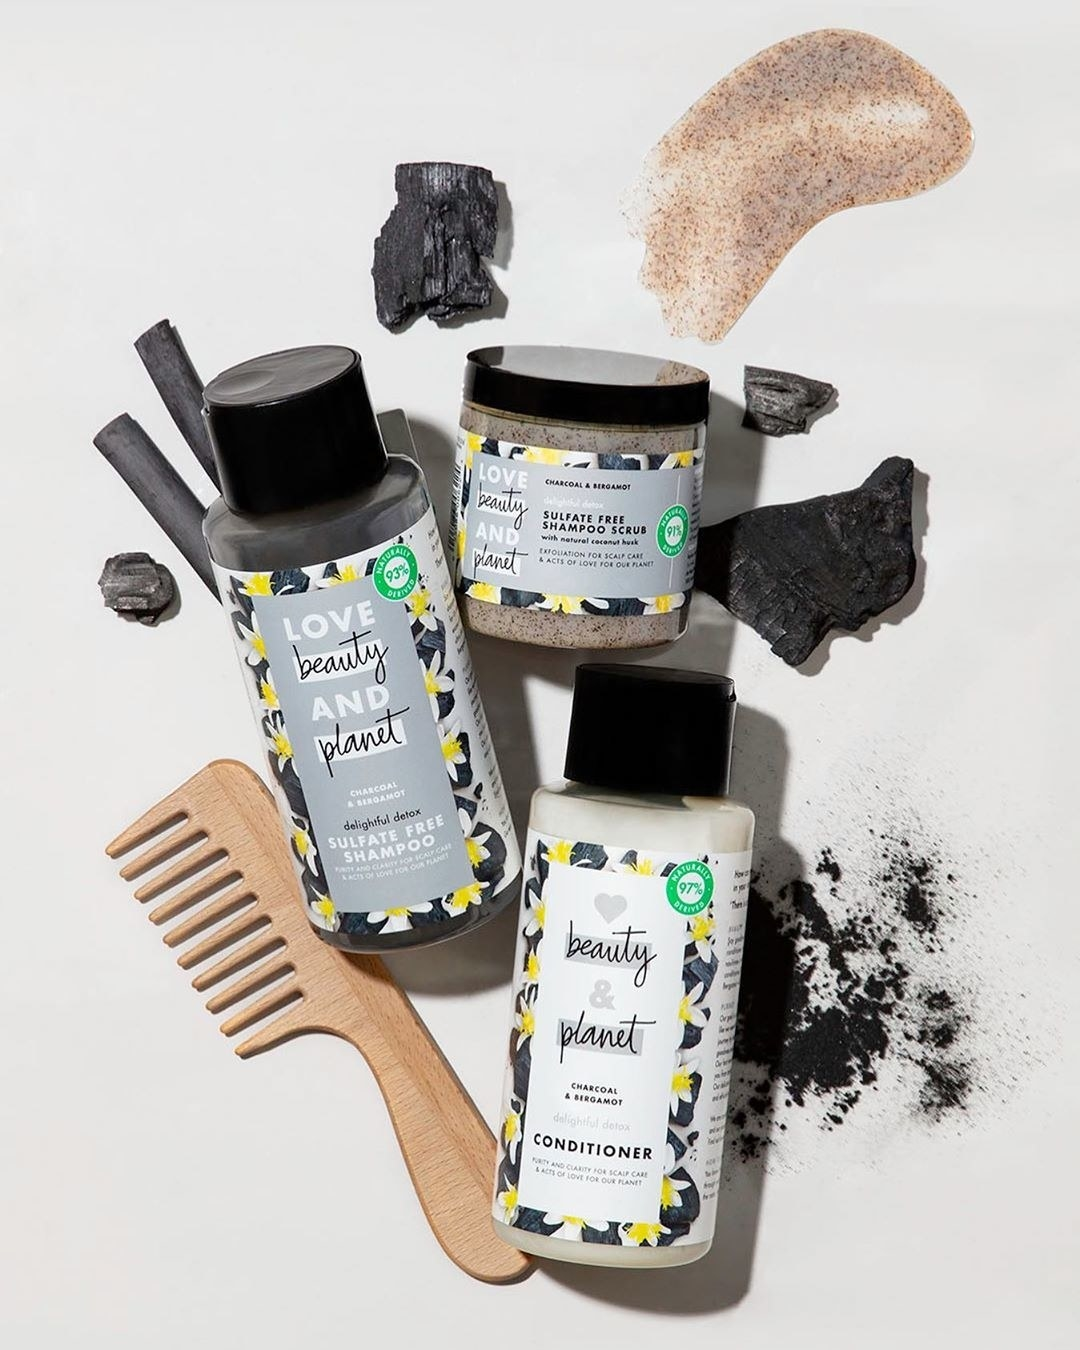 love beauty and planet's charcoal shampoo, conditioner and shampoo scrub